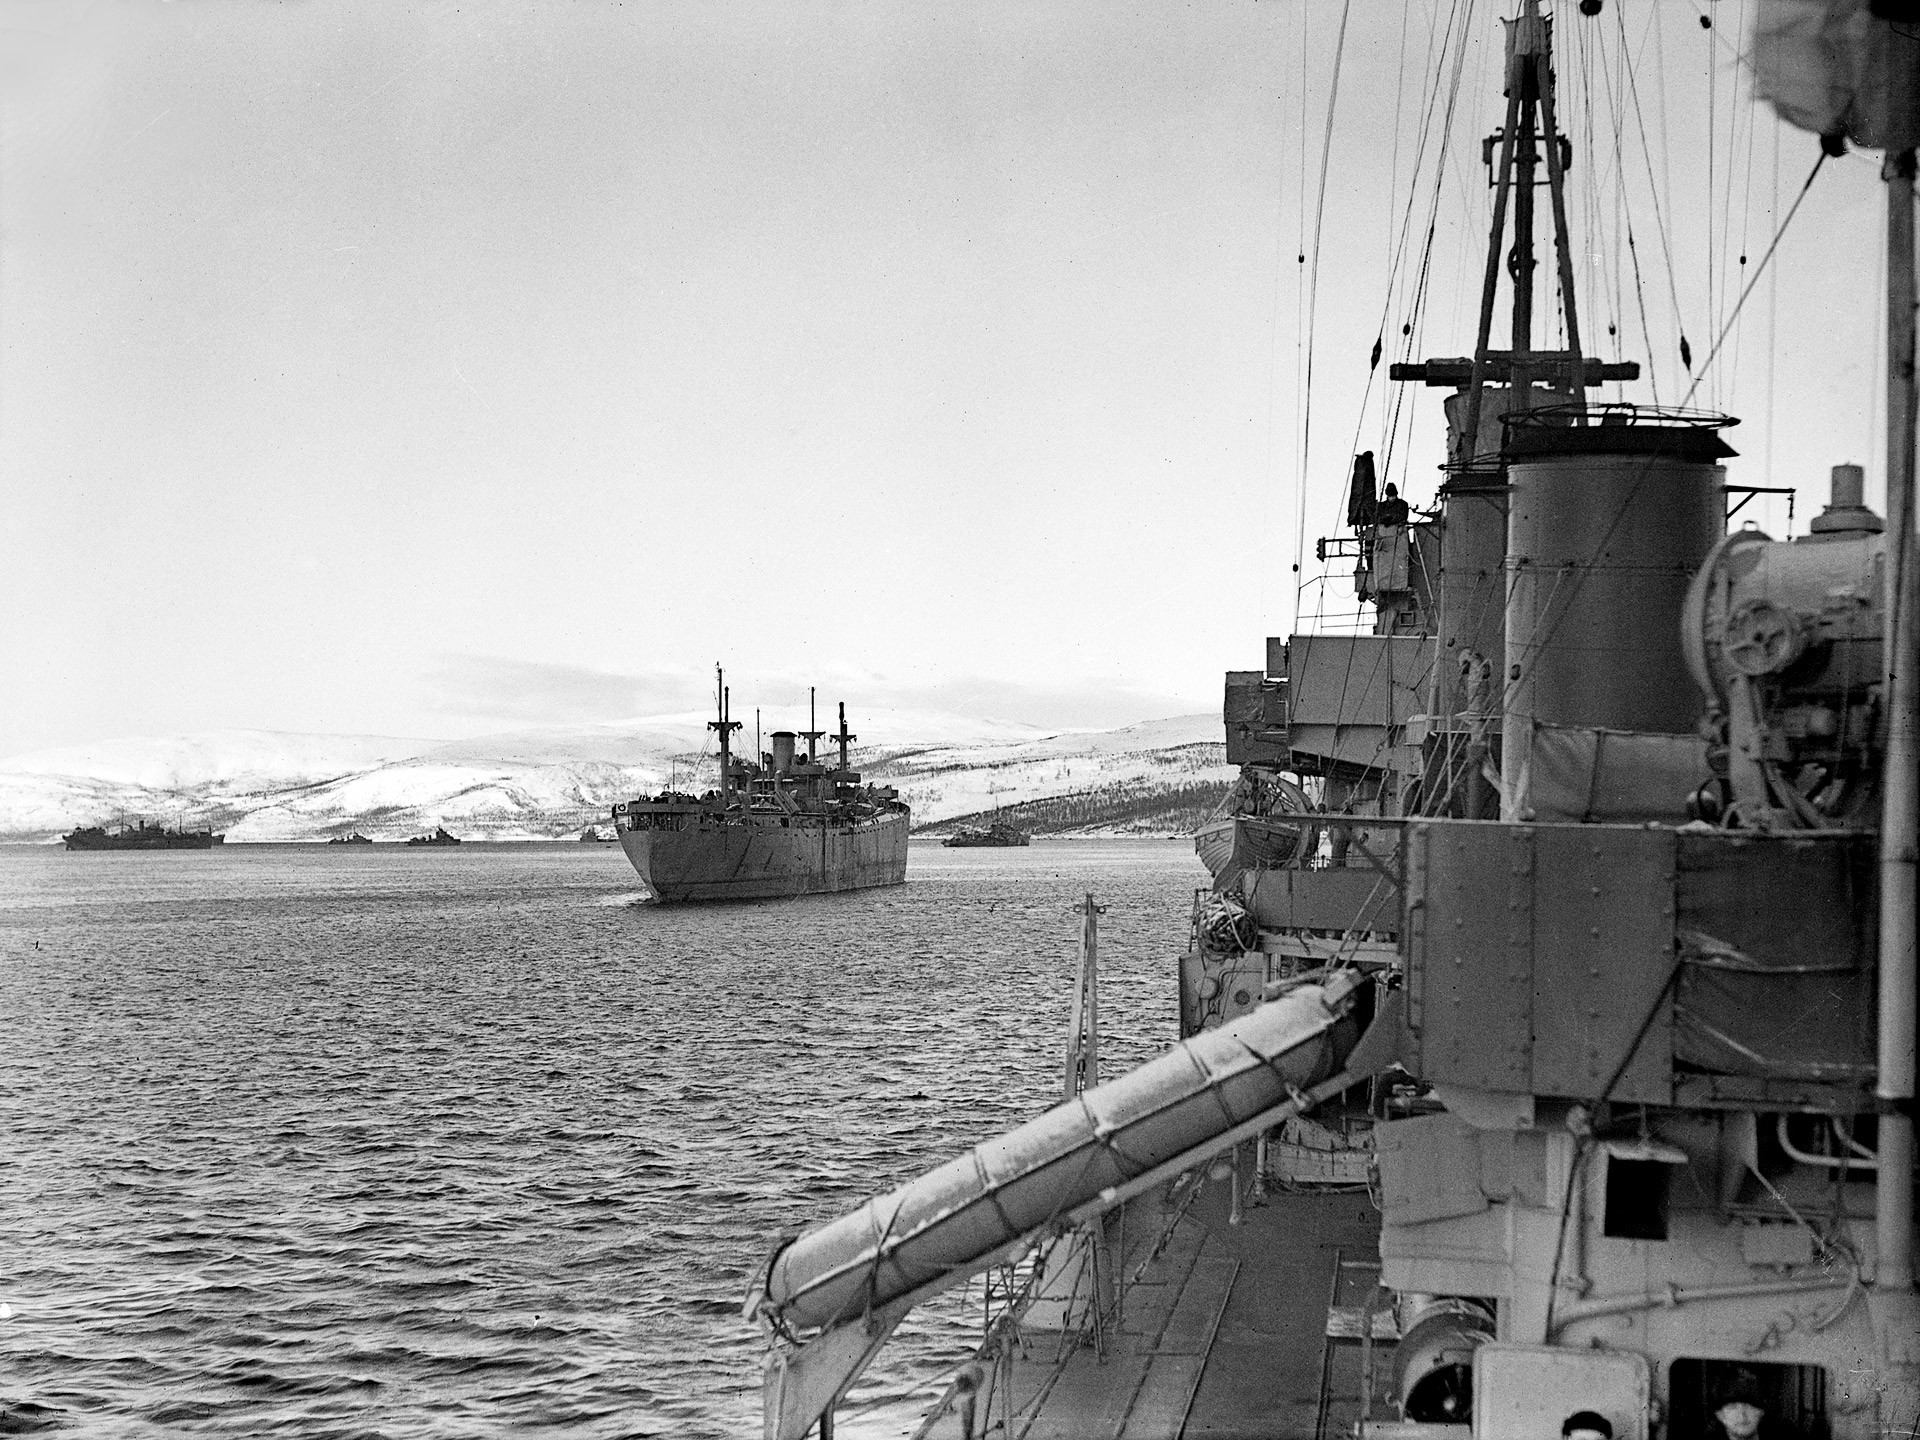 Convoy RA-53 departs Kola Inlet, March 1, 1943